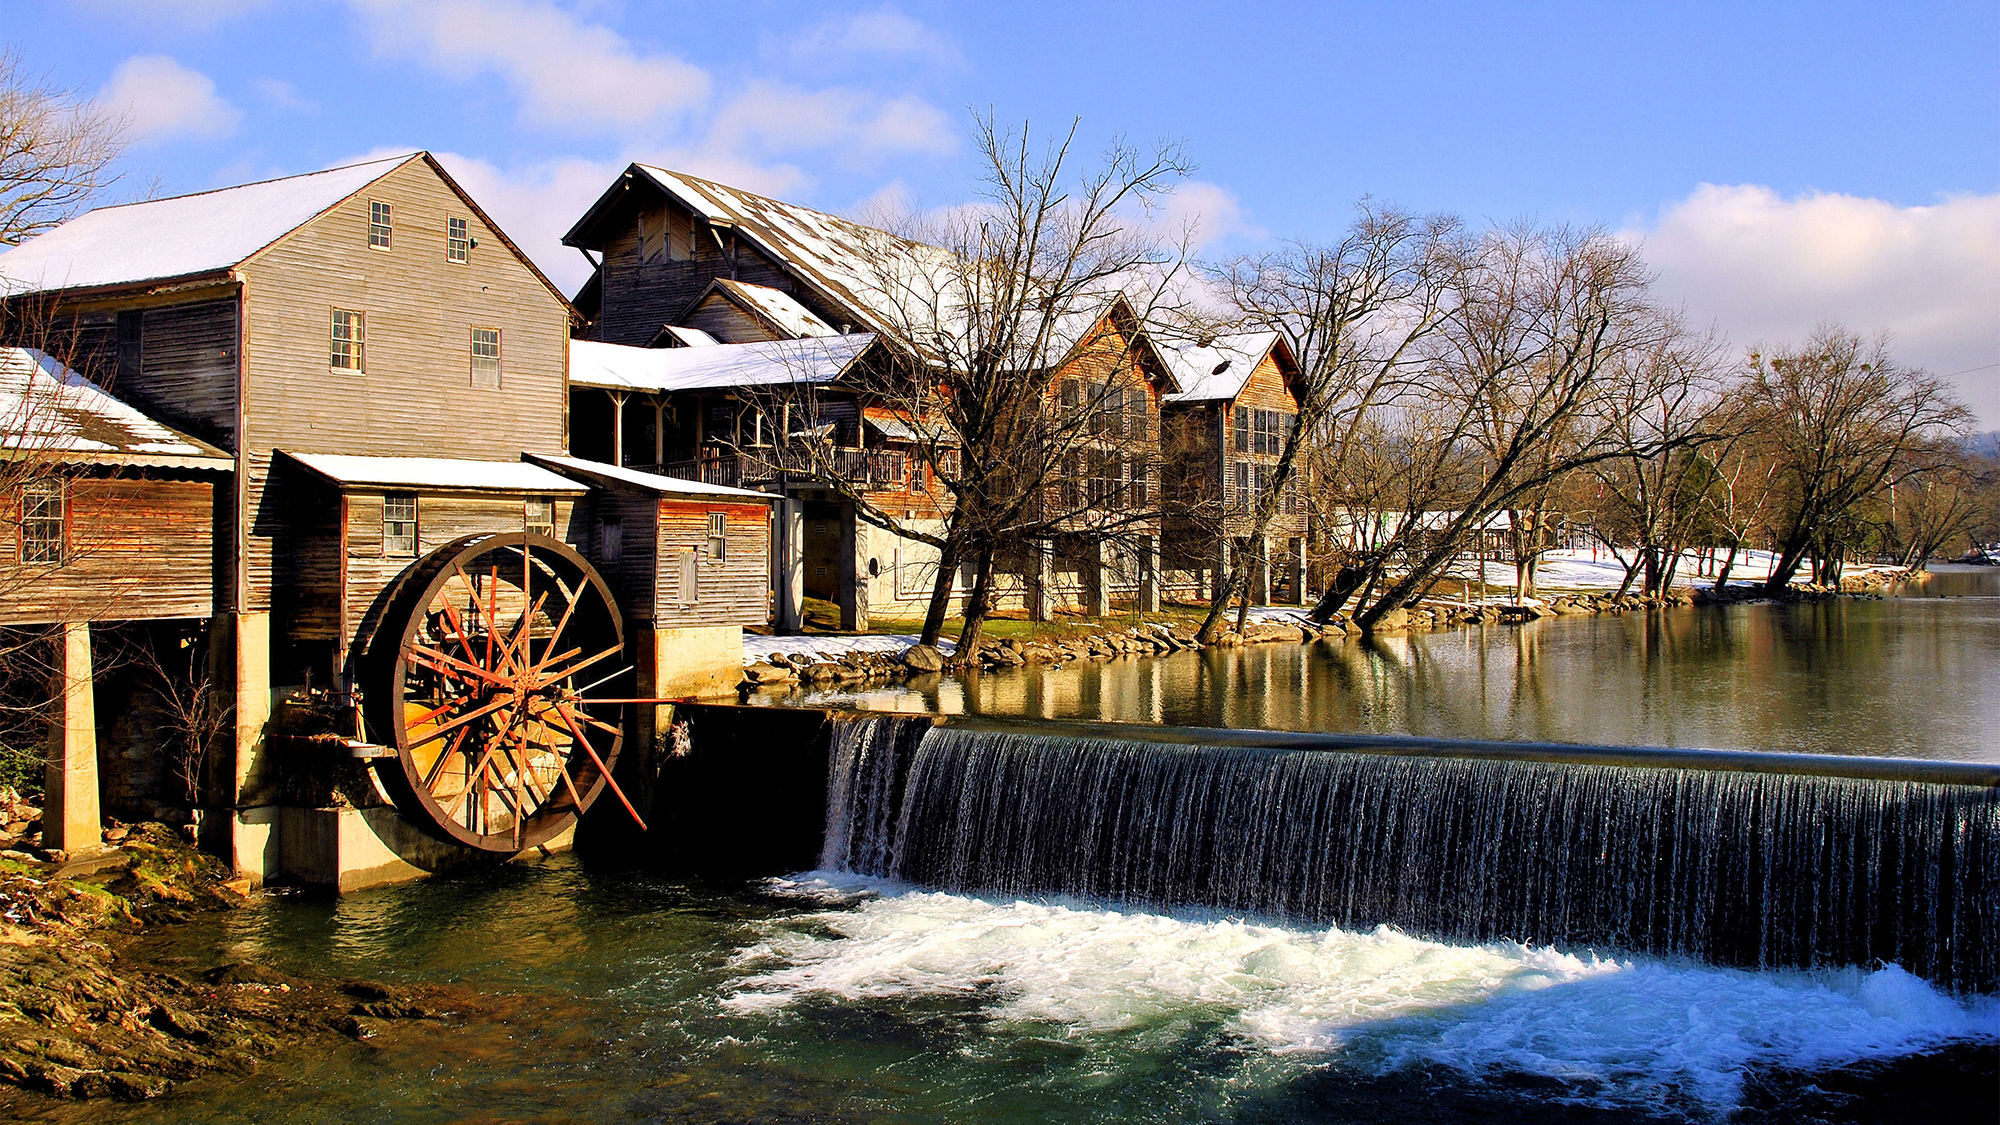 middle eastern singles in pigeon forge Explore things to do in pigeon forge from dollywood to wonderworks to the smoky mountains, you'll find plenty of fun things to do in pigeon forge, tn.